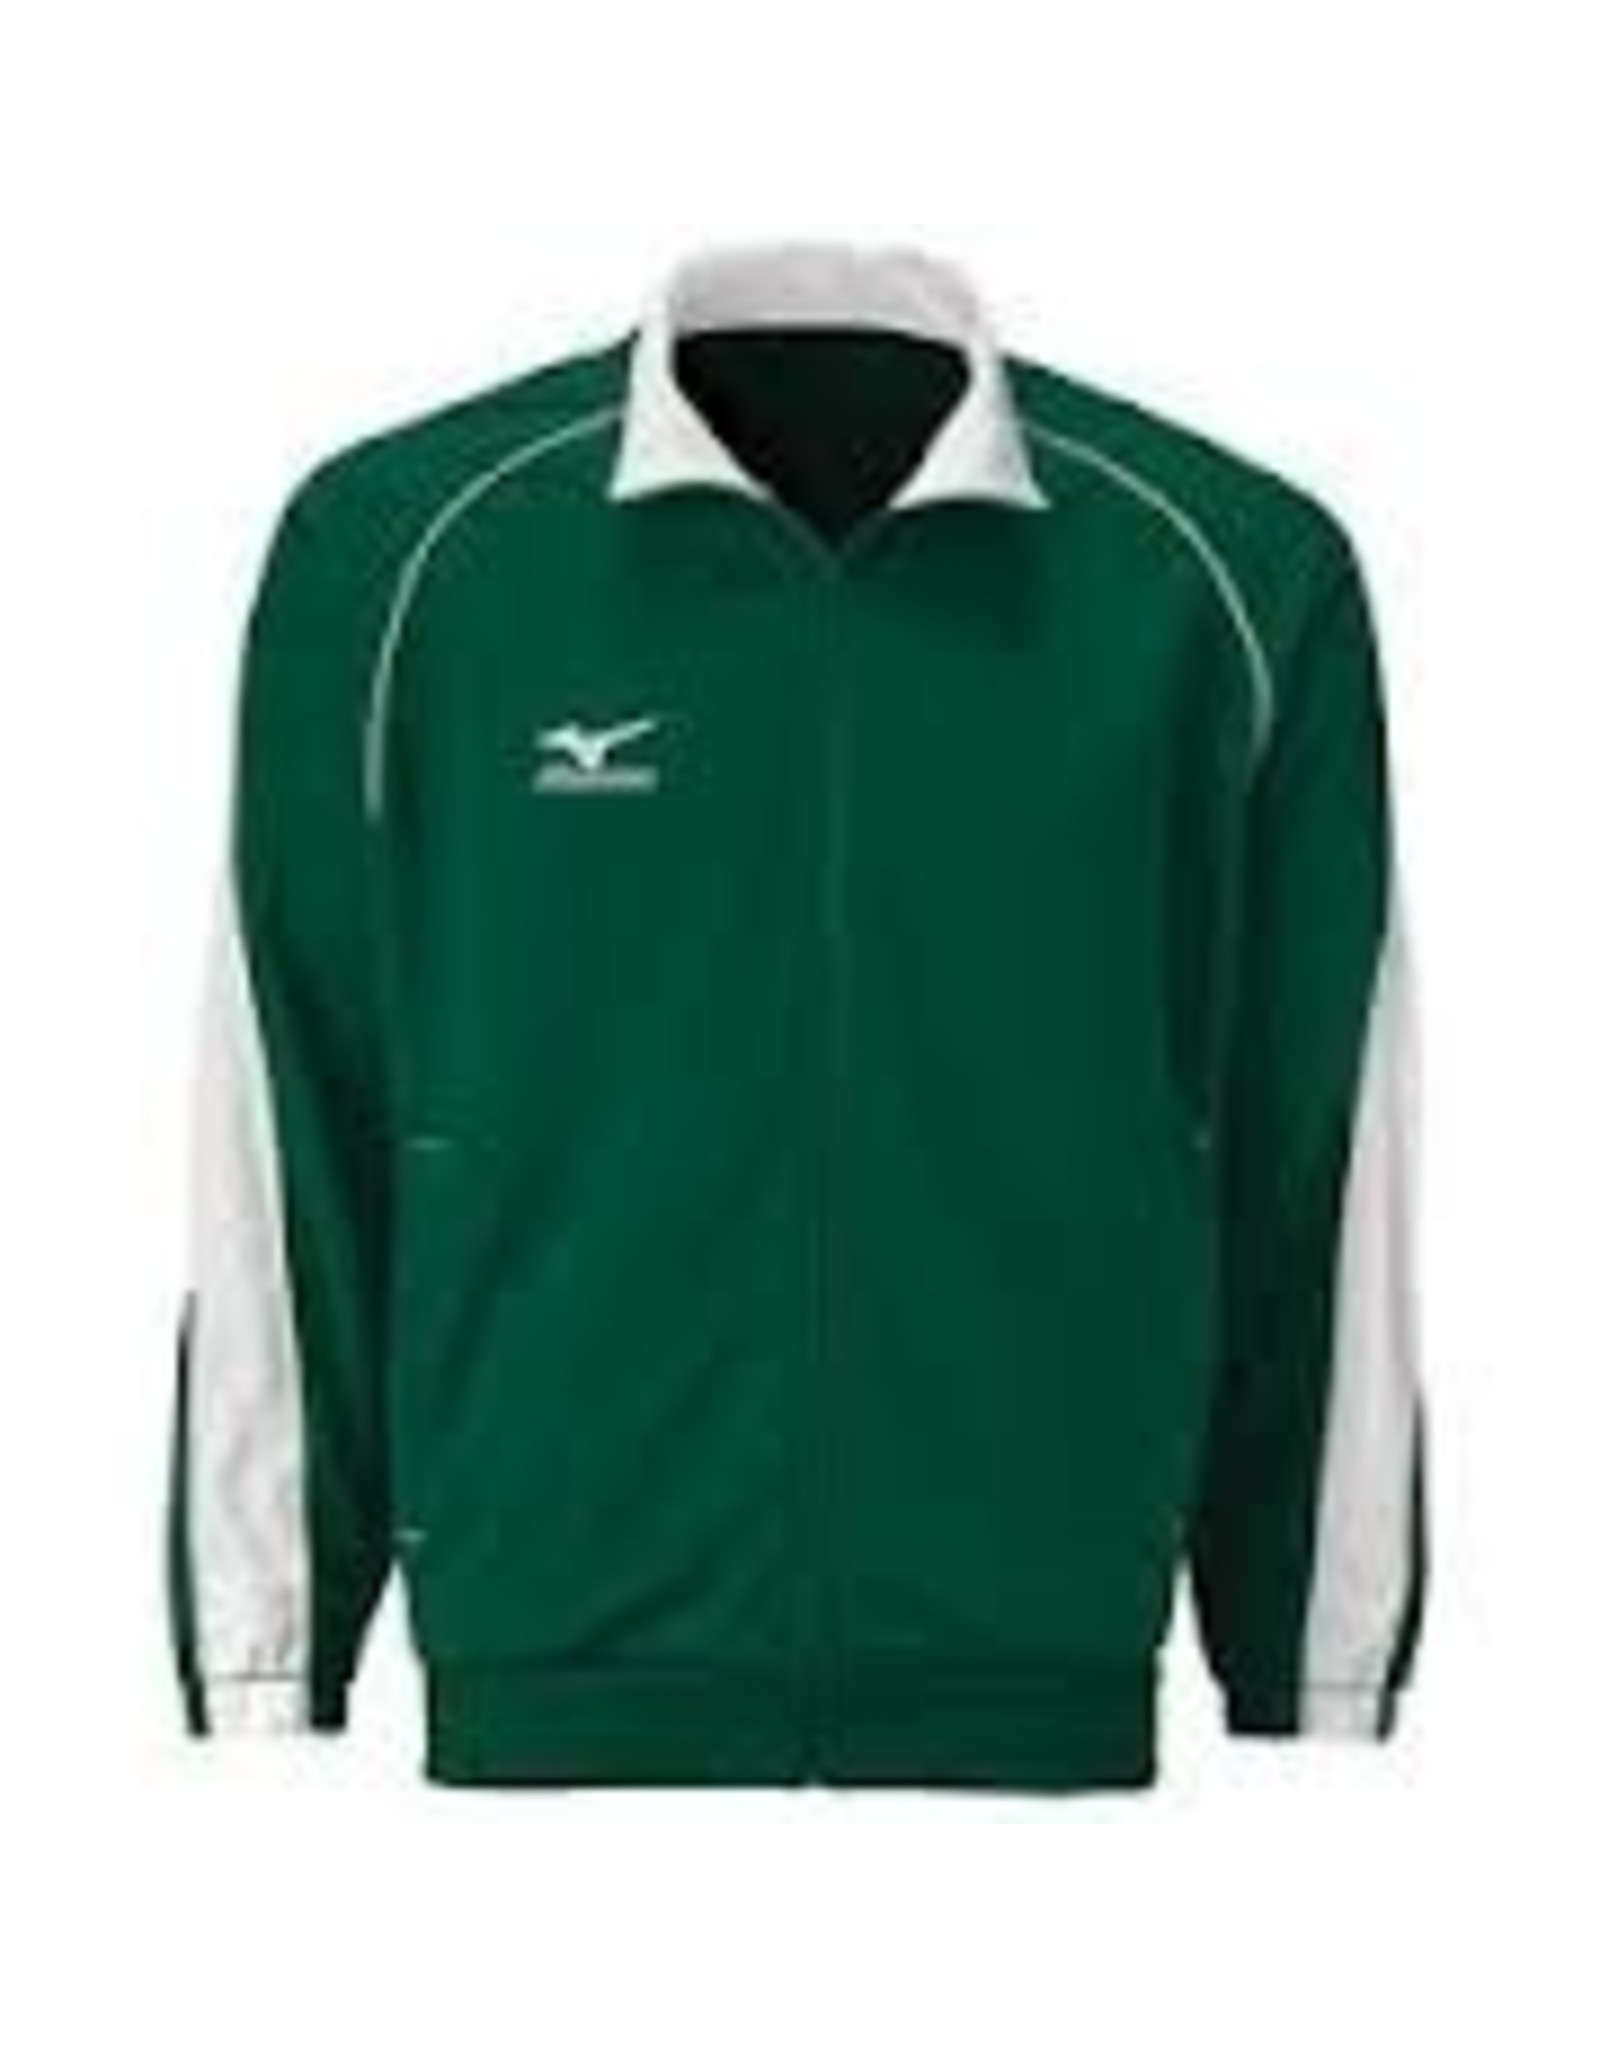 Mizuno DISCONTINUED - These jackets will not be available once our stock has been depleted.